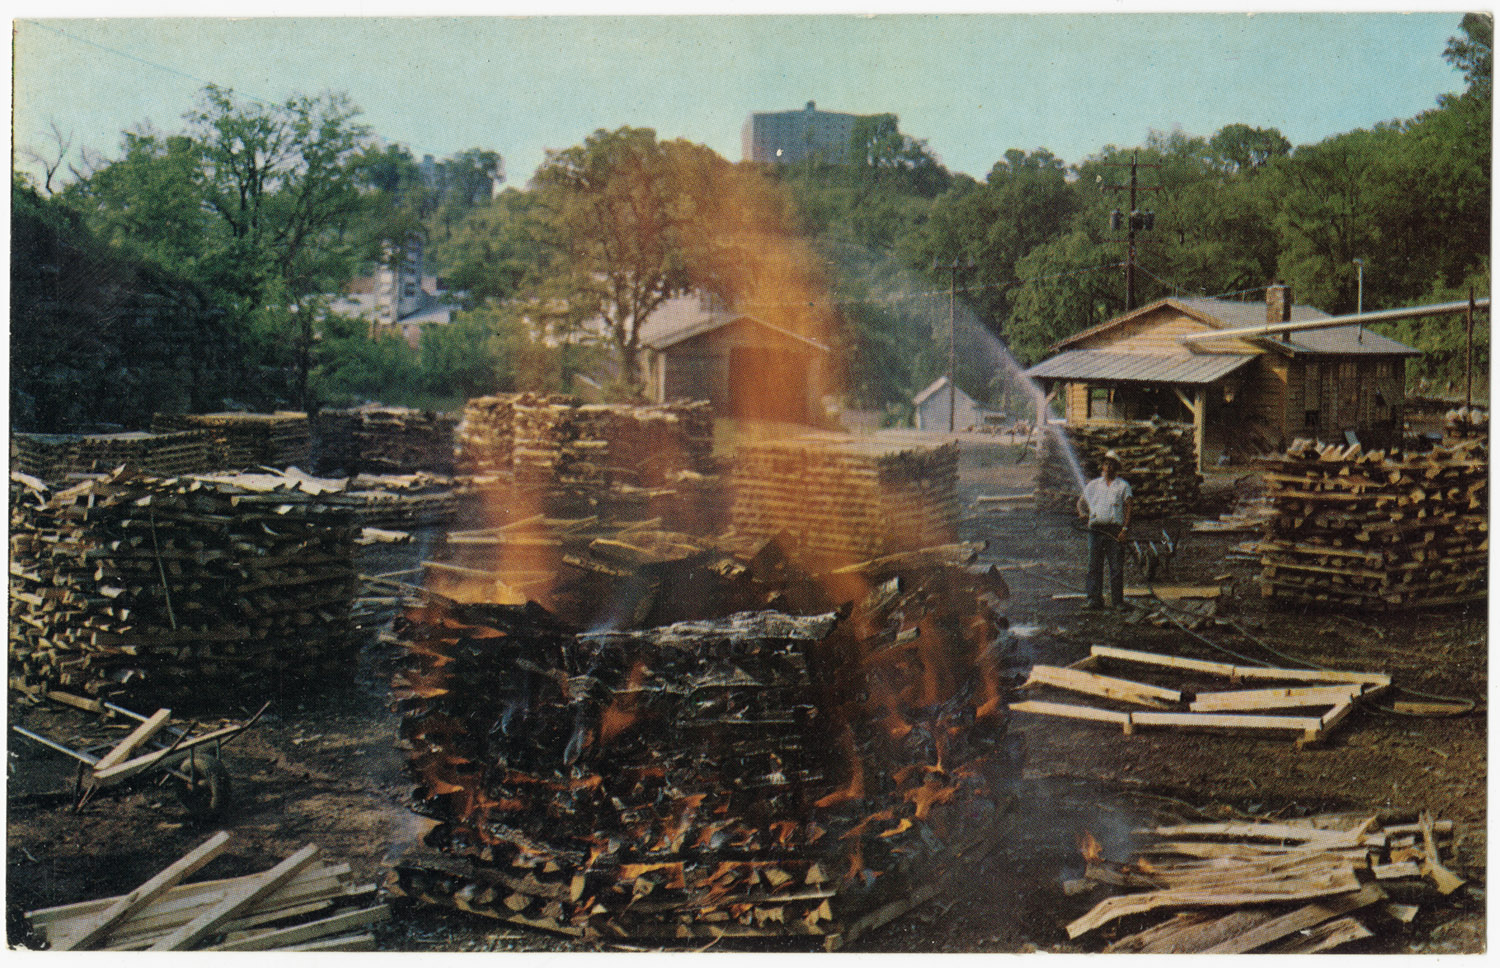 making_charcoal_at_jack_daniels_jack_daniel_distillery_lynchburg_pop-_361_tennessee